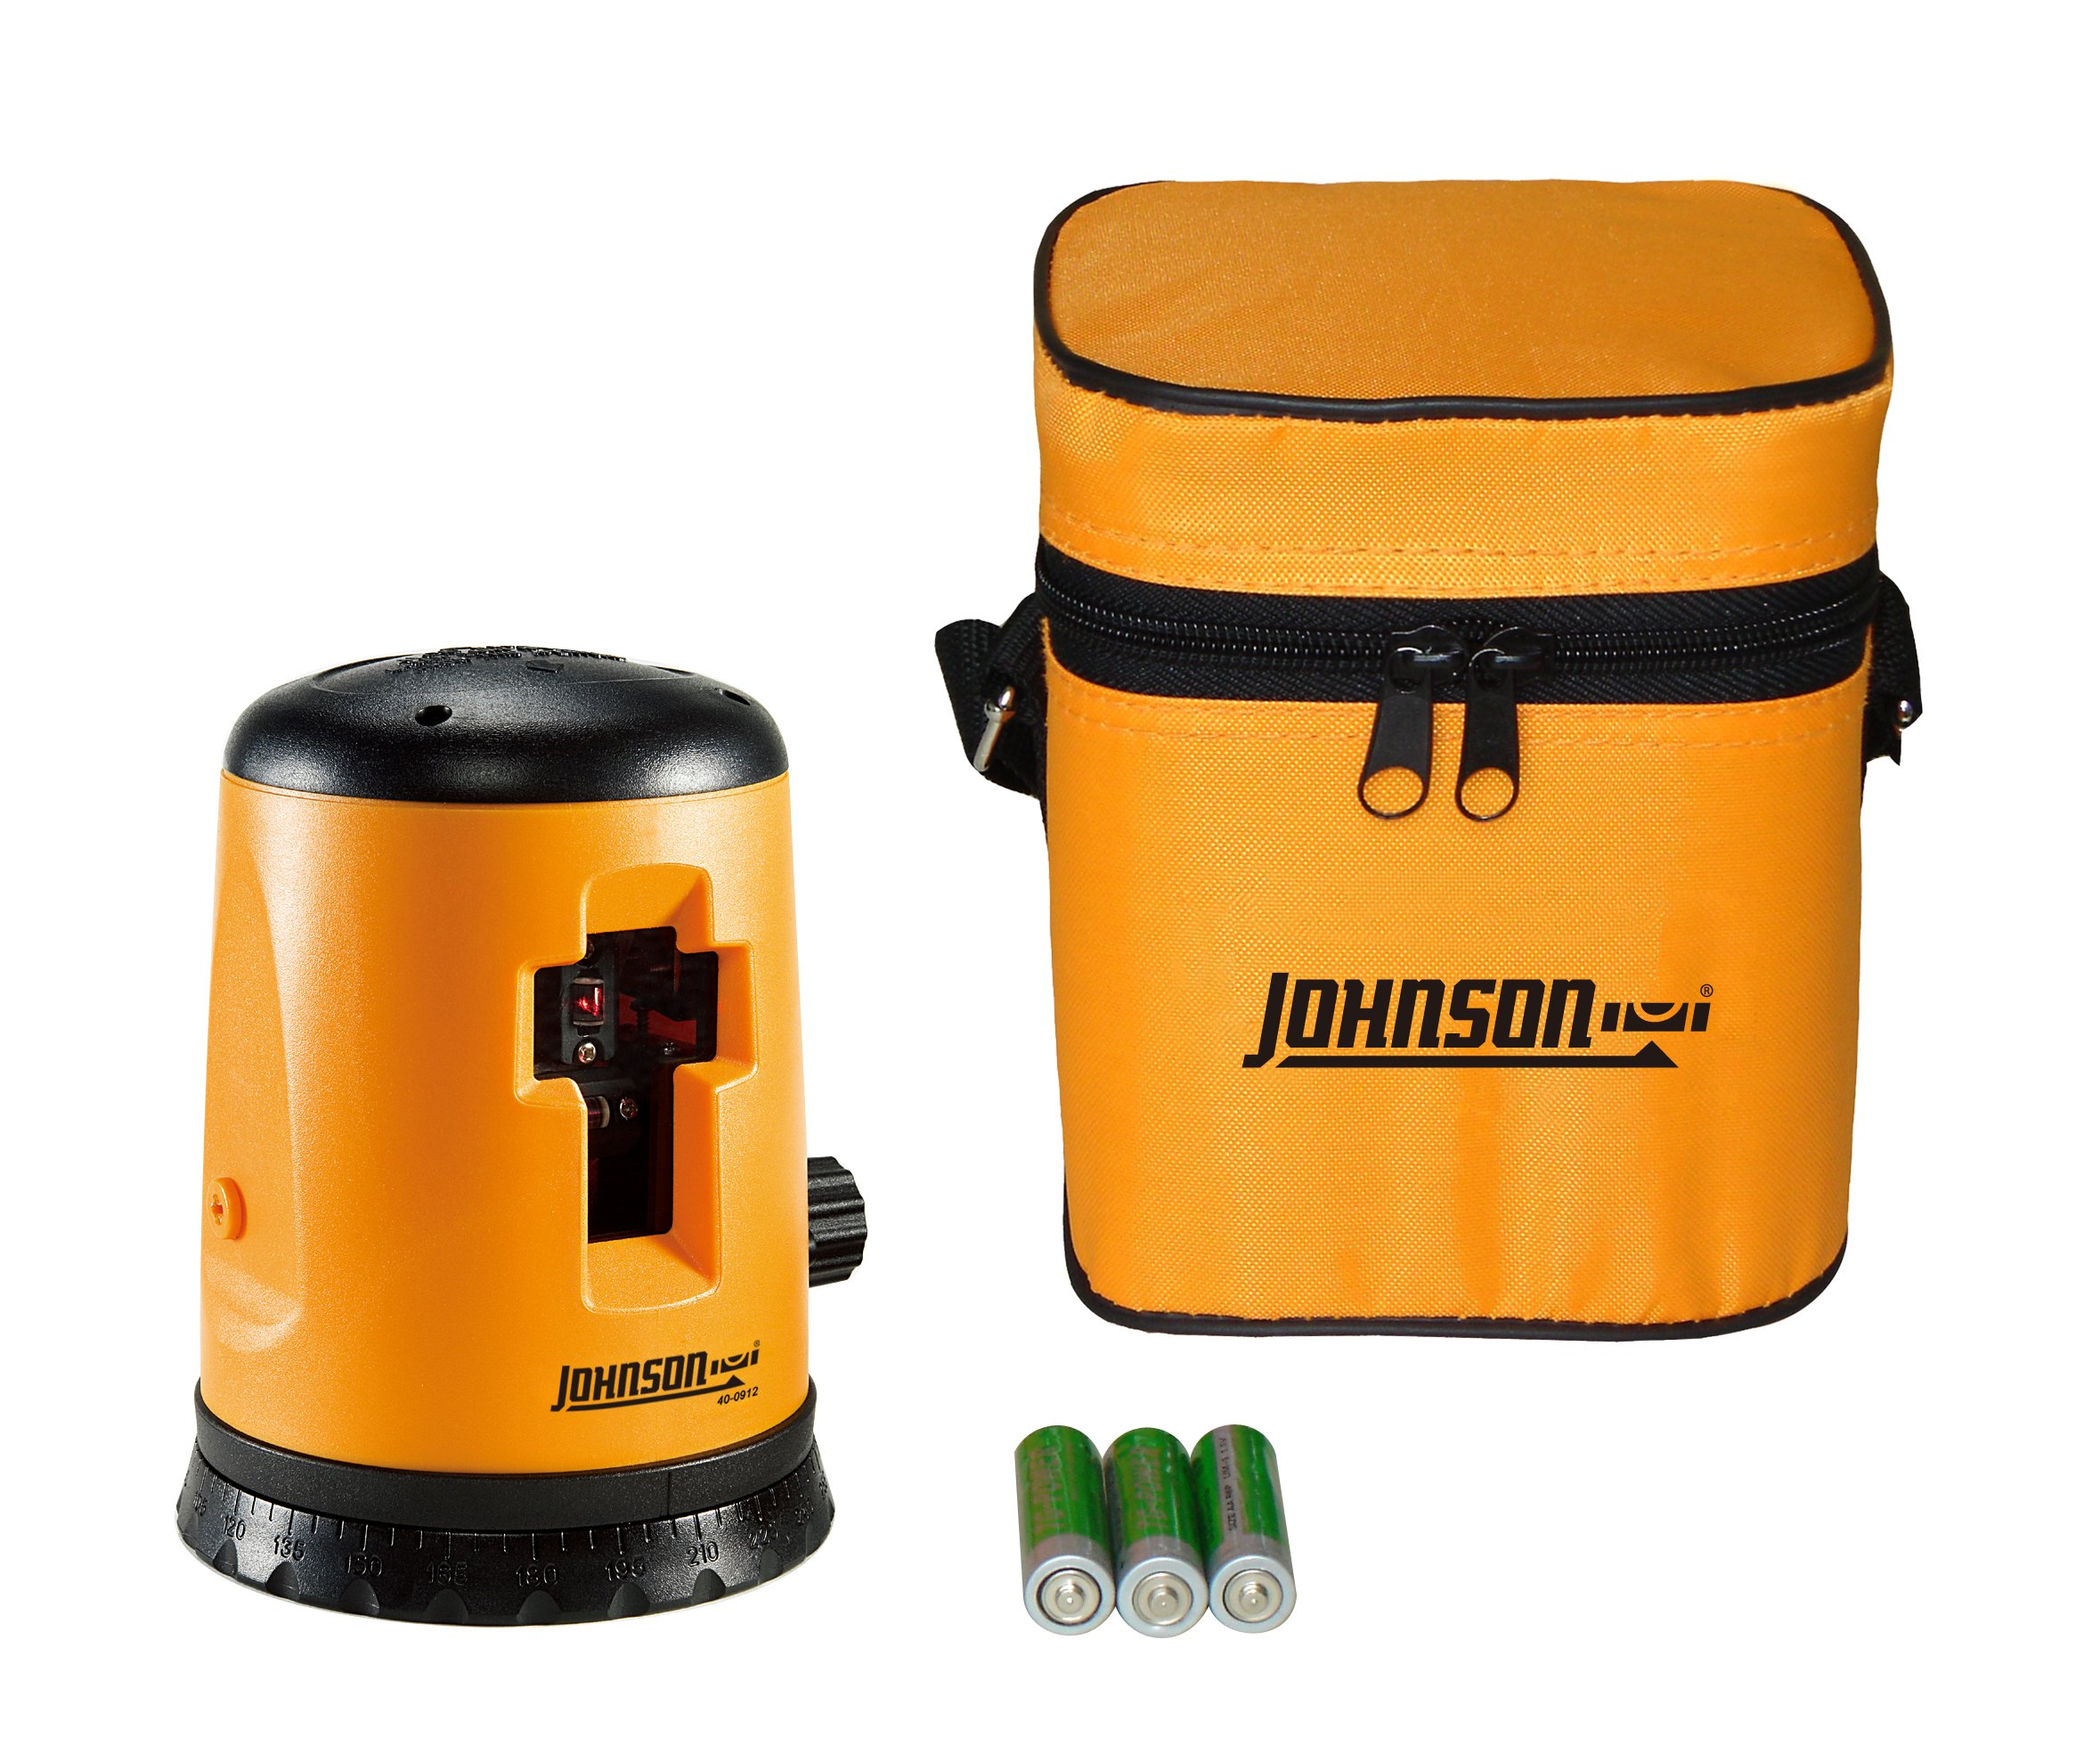 Johnson Level and Tool 40-0912 Self-Leveling Cross-Line Laser Level